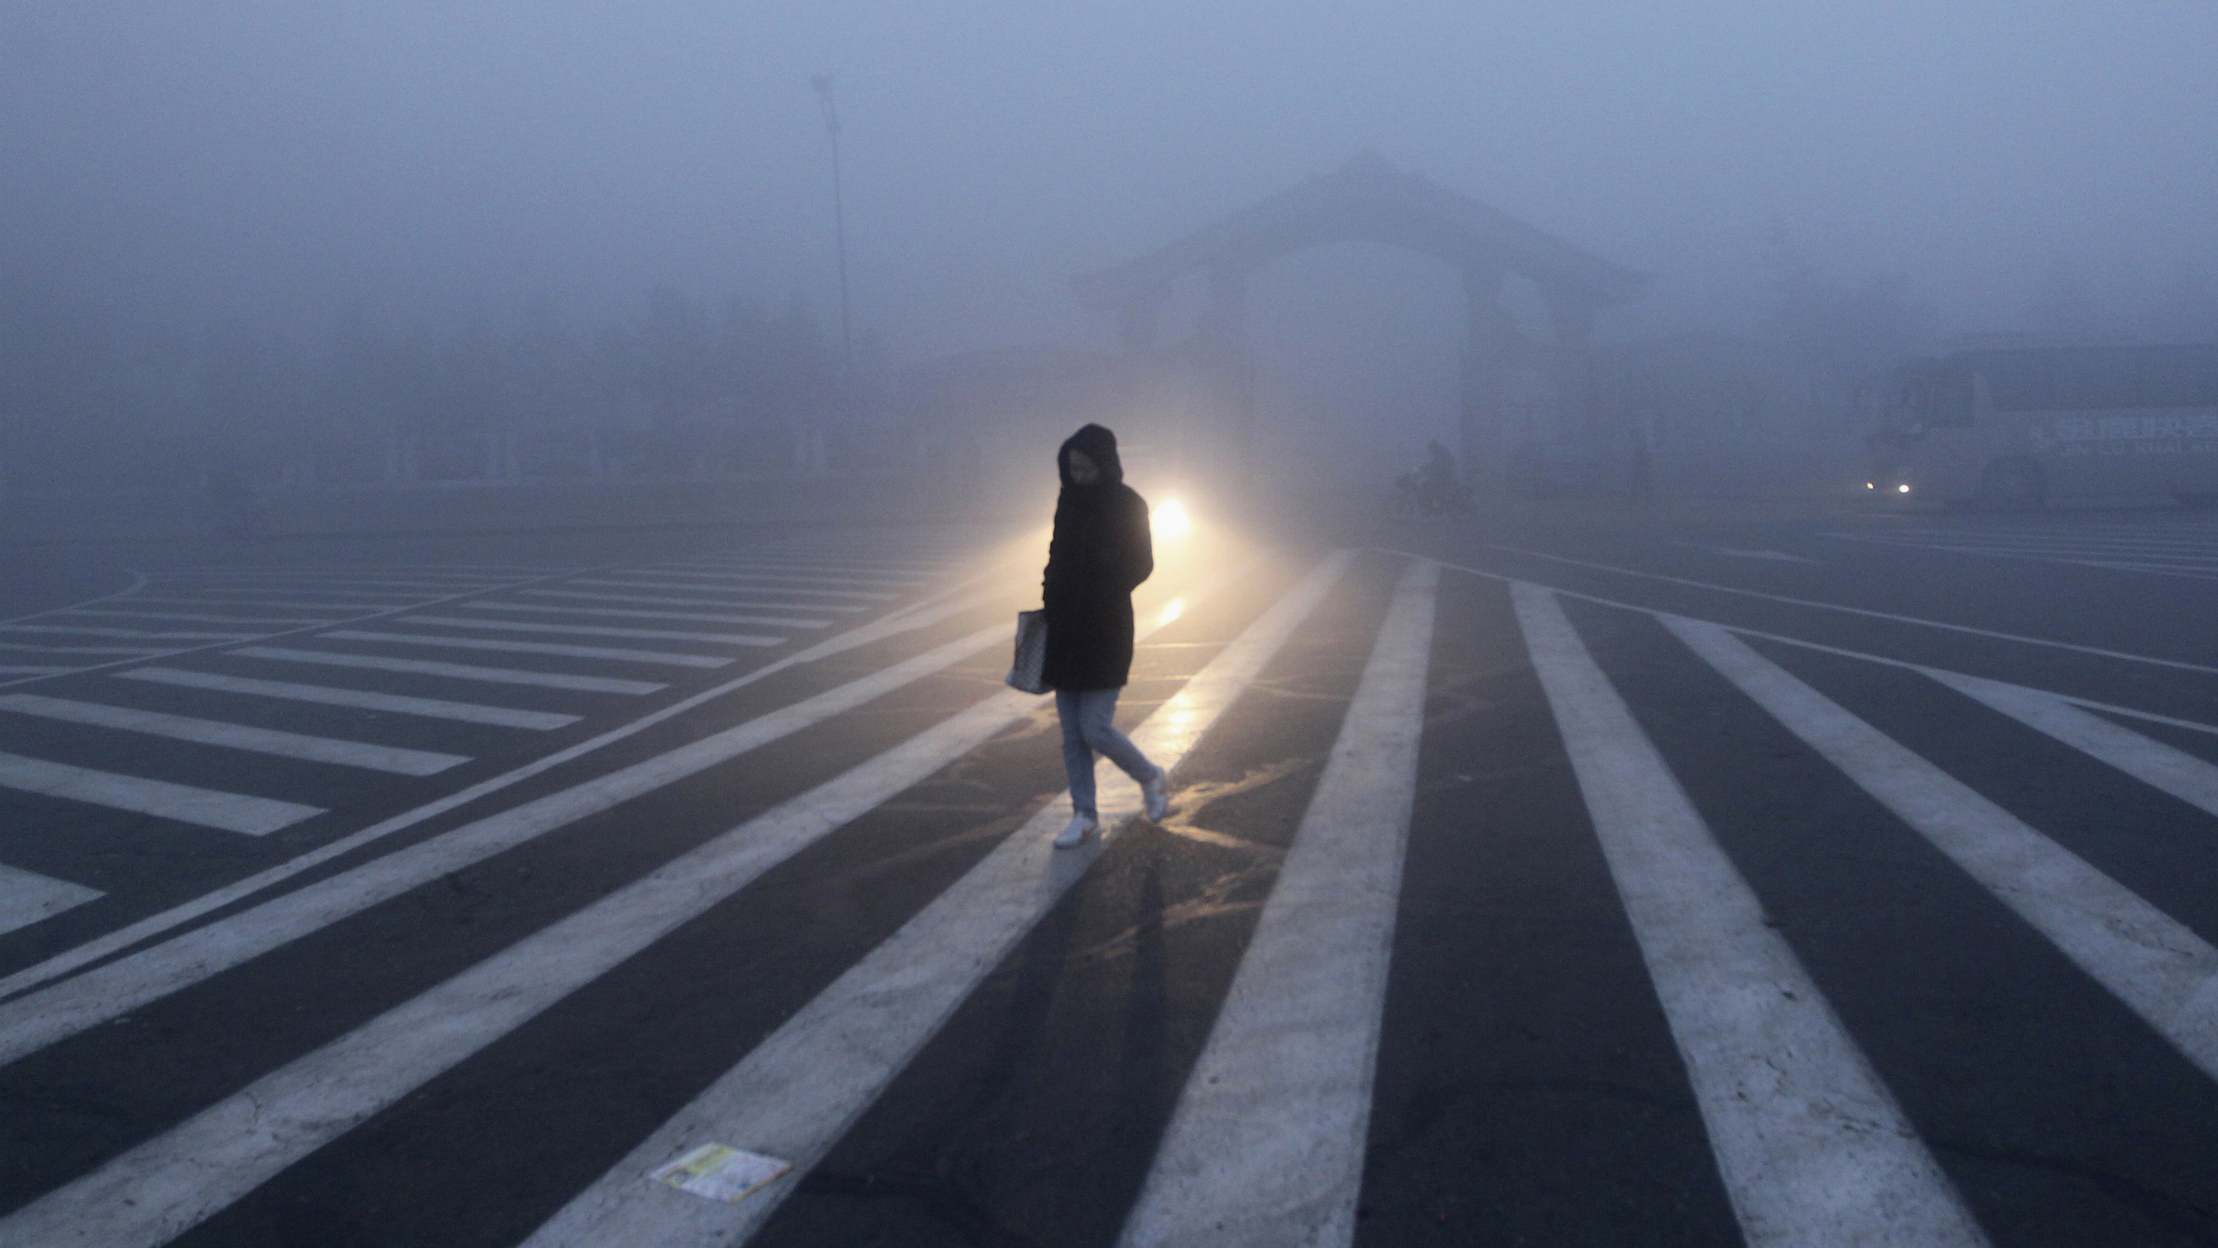 A woman walks along a street during a smoggy day in Changchun, Jilin province, October 22, 2013. The severe smog continued to shroud major cities in north-east China including Changchun, with its average visibility less than 5 metres (16 feet) at 6 am Tuesday, according to local media. REUTERS/China Daily